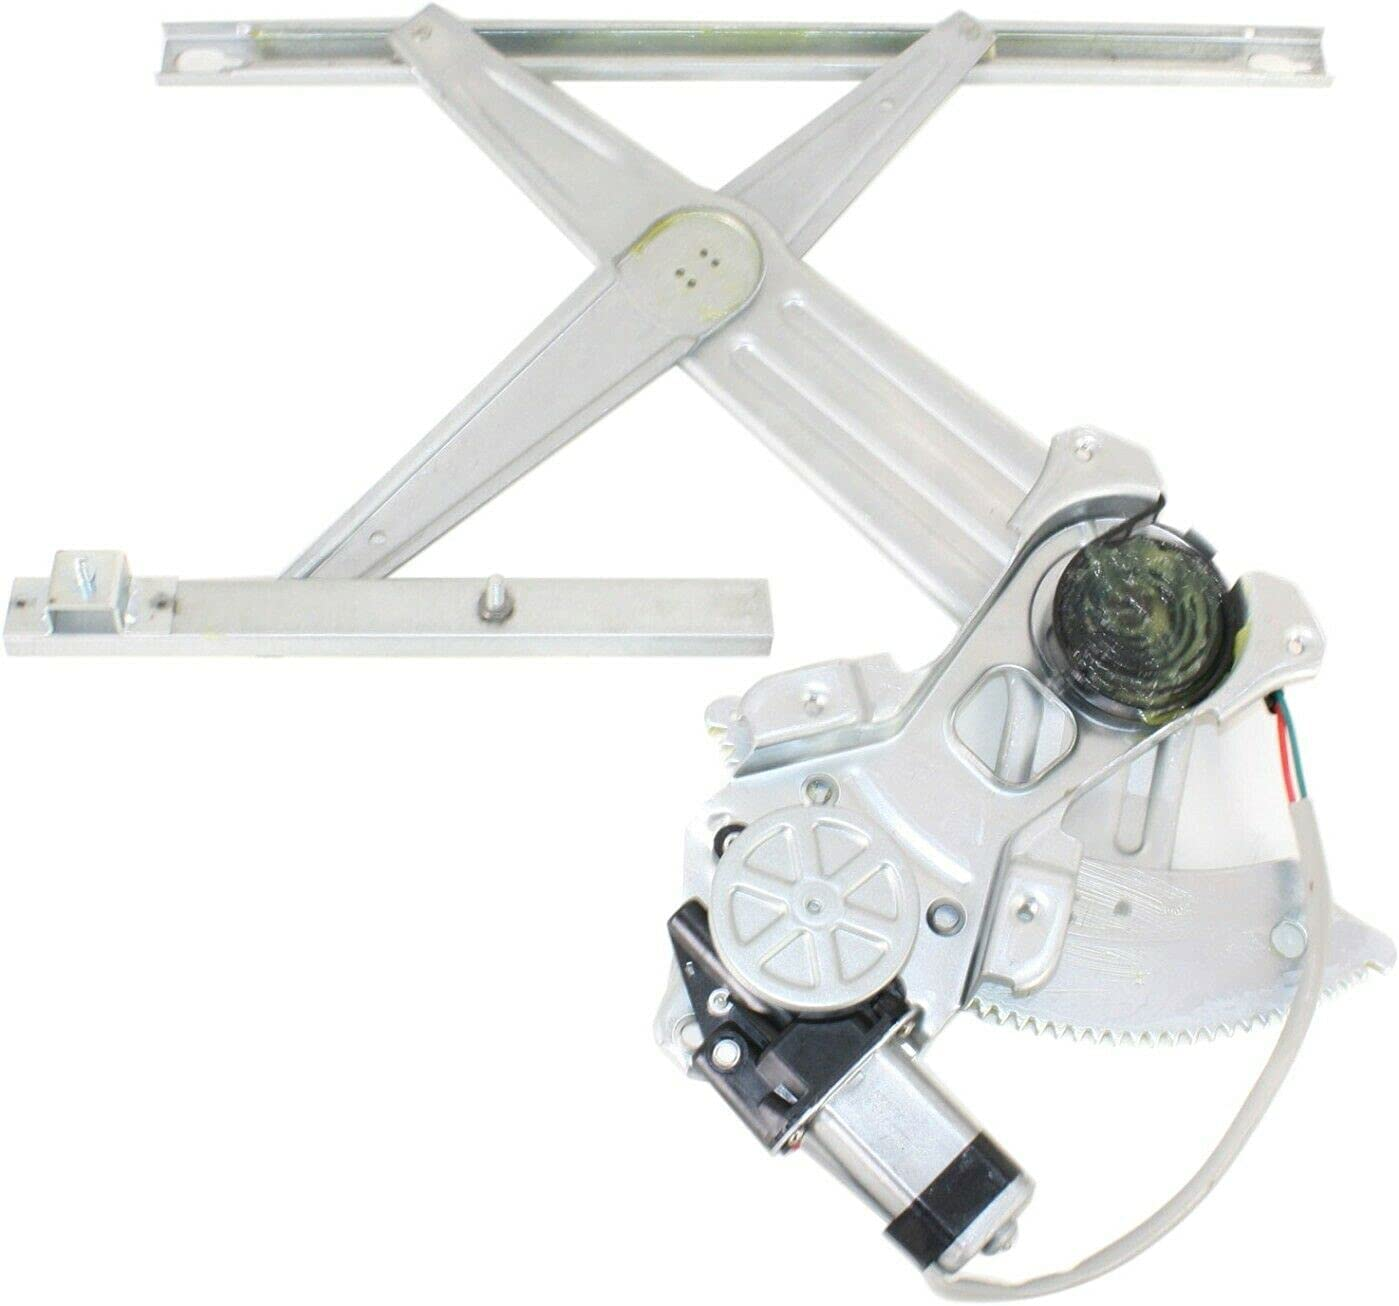 New Replacement Power Window Regulator Front Motor Limited time cheap sale Left LH Dri Quality inspection